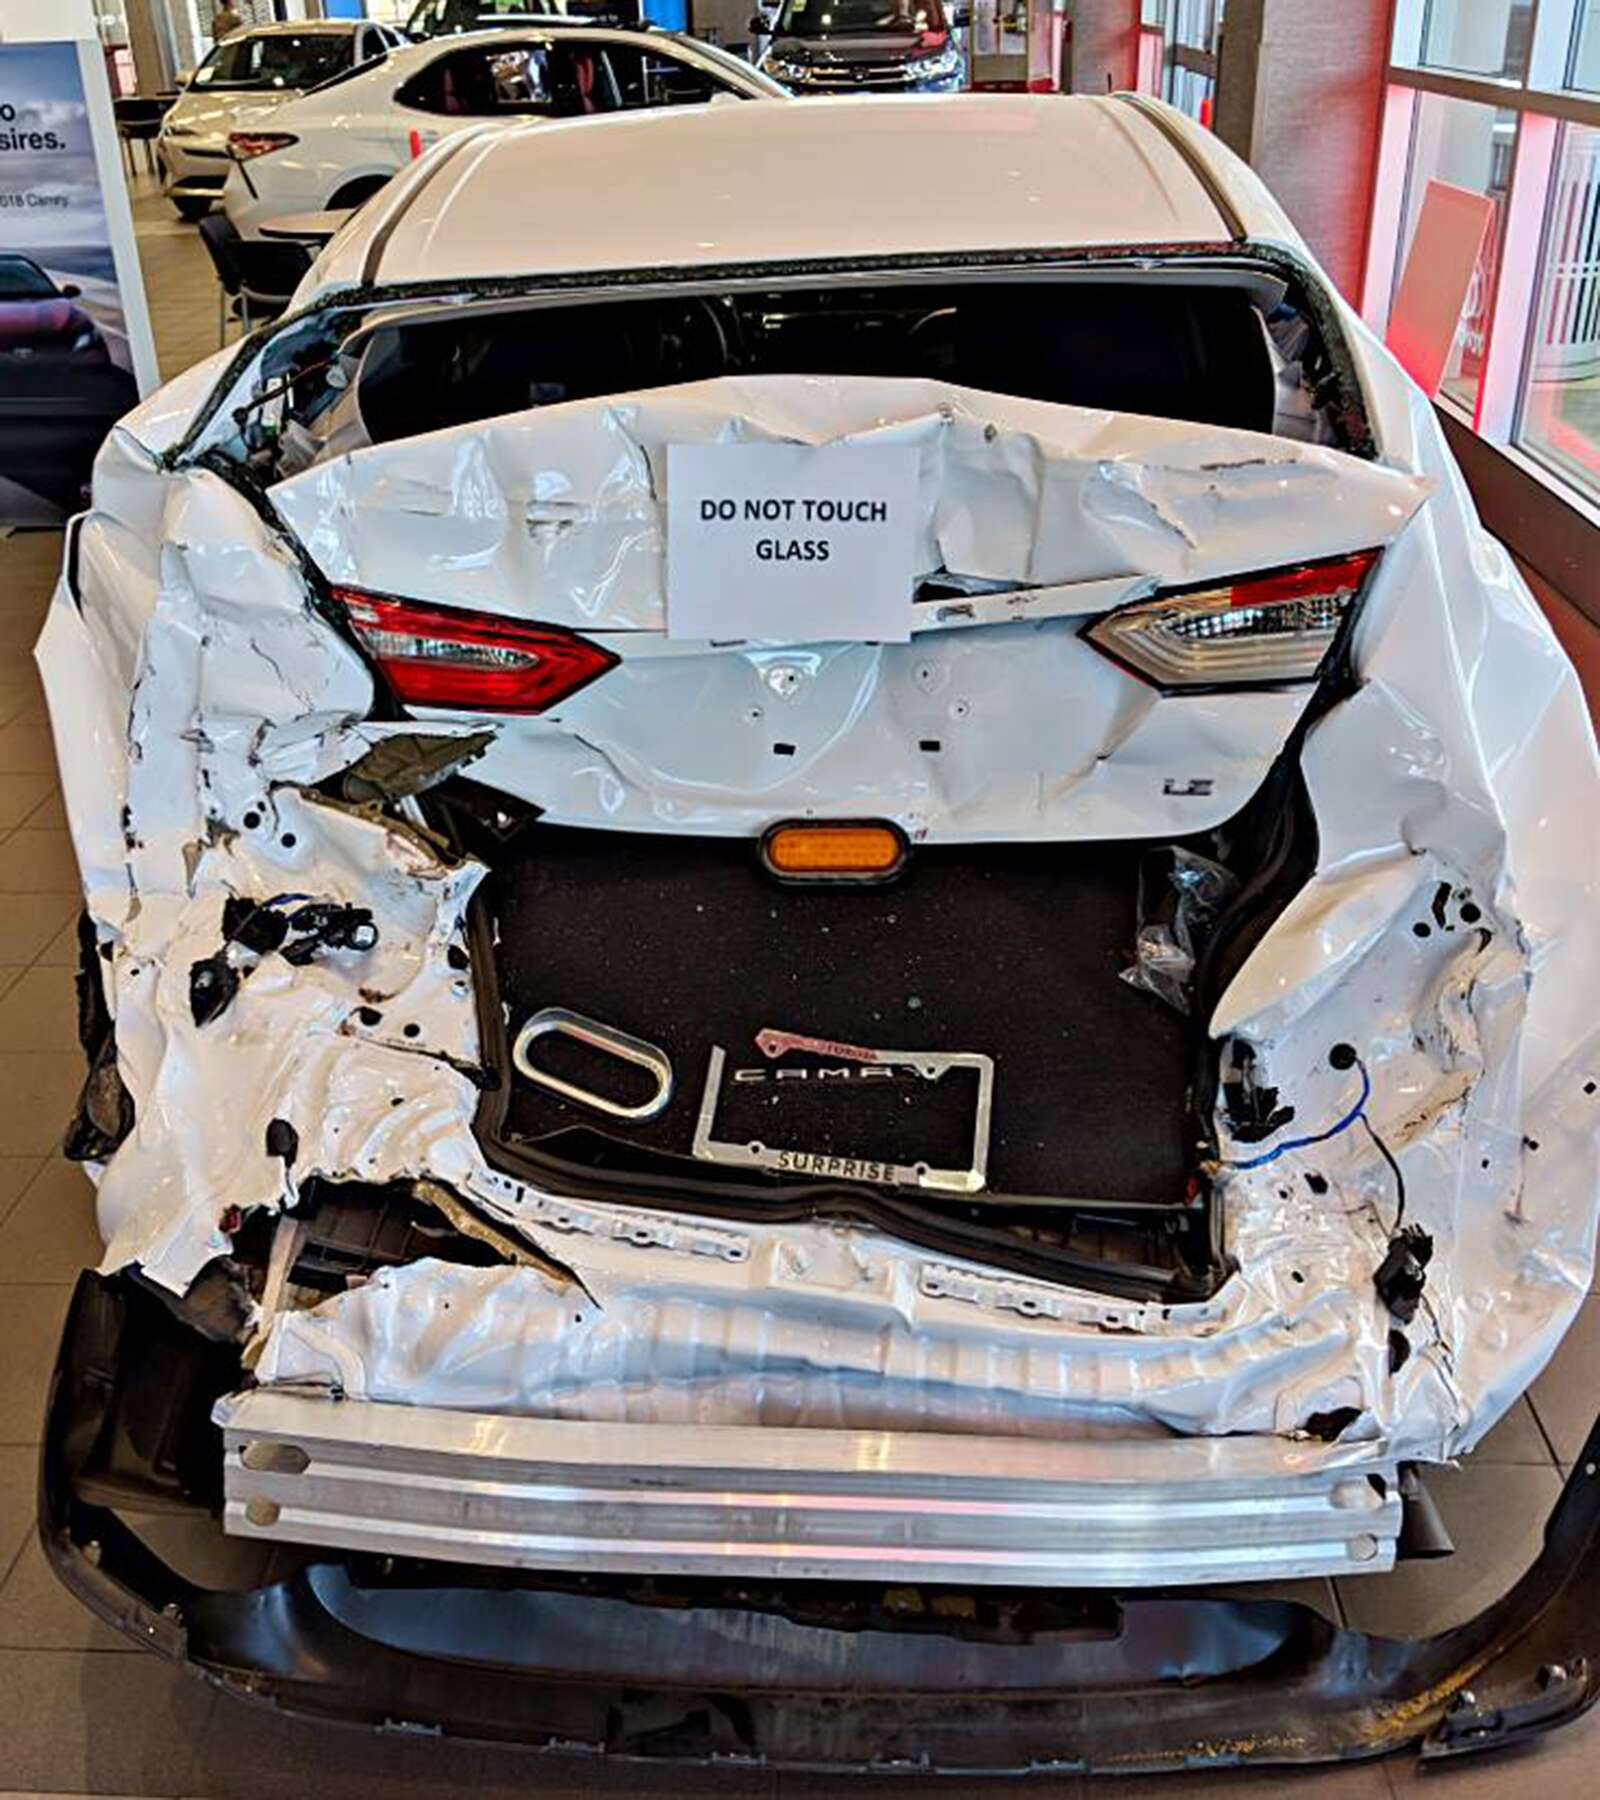 toyota dealership displays 2018 toyota camry that got rear-ended